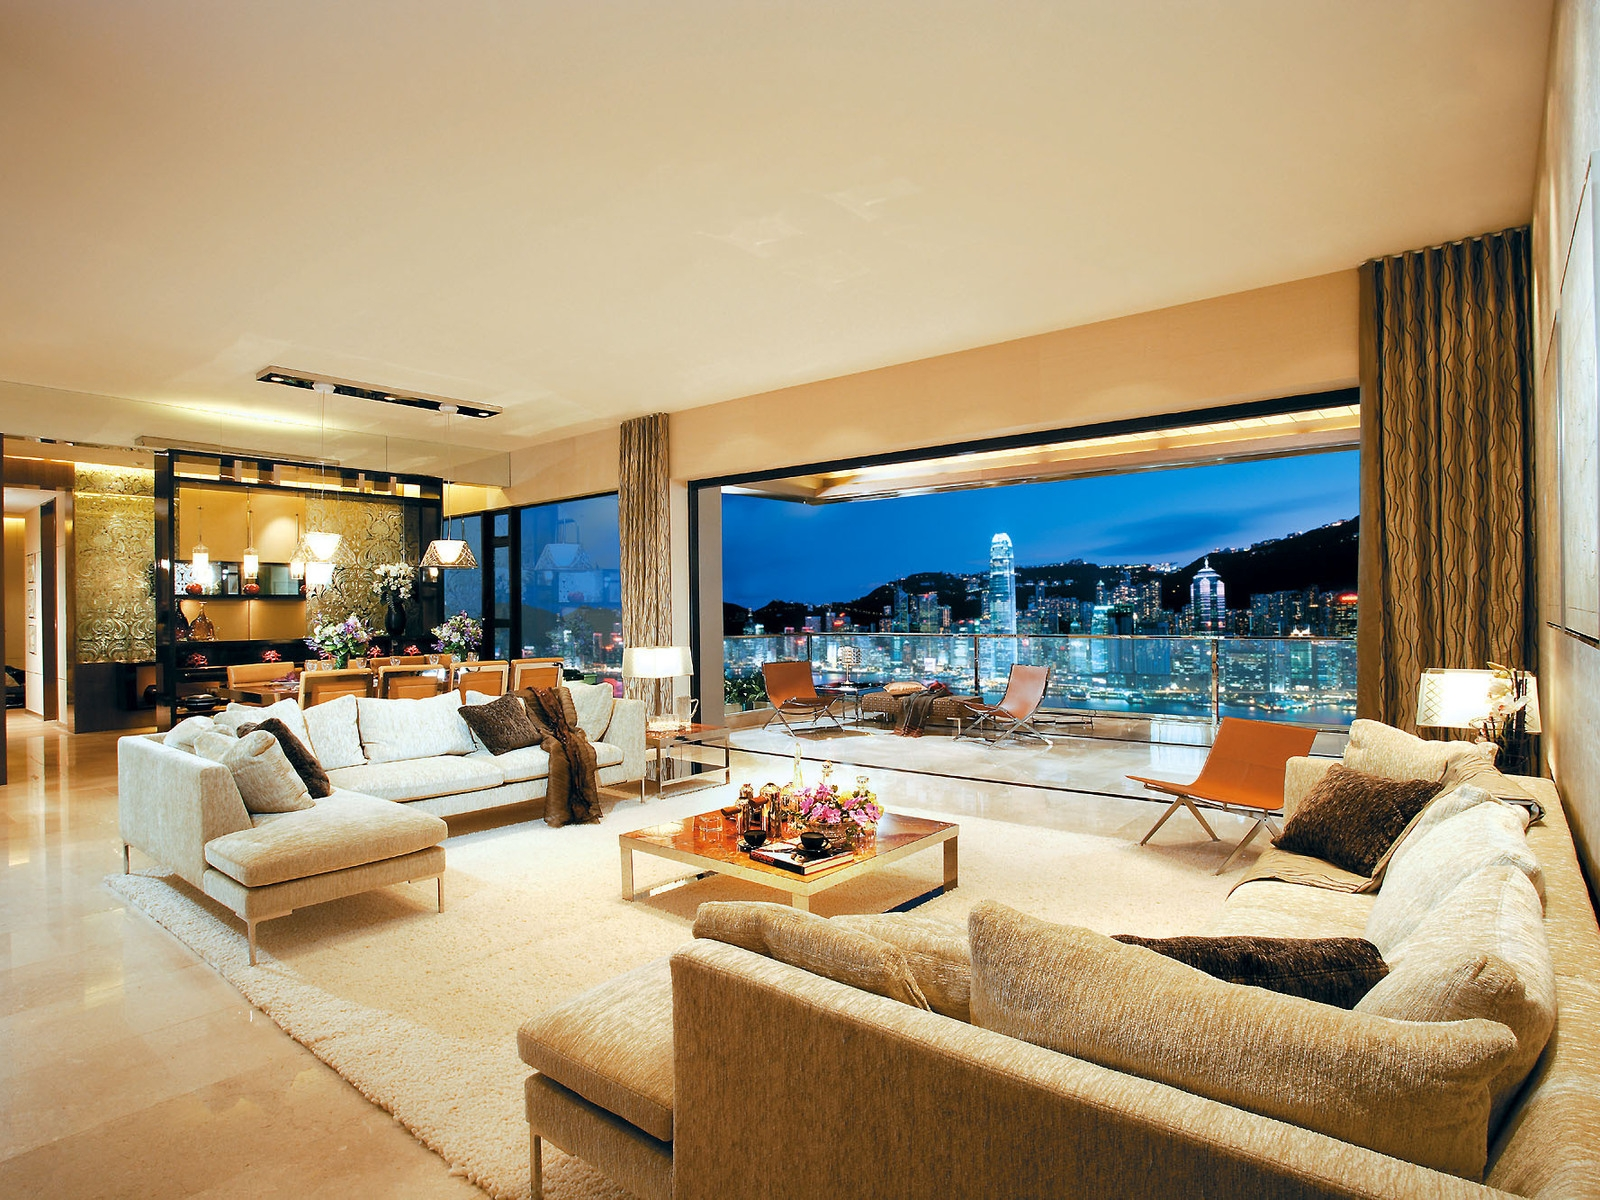 30 Modern Luxury Living Room Design Ideas. Jul 14, 2015. 443shares